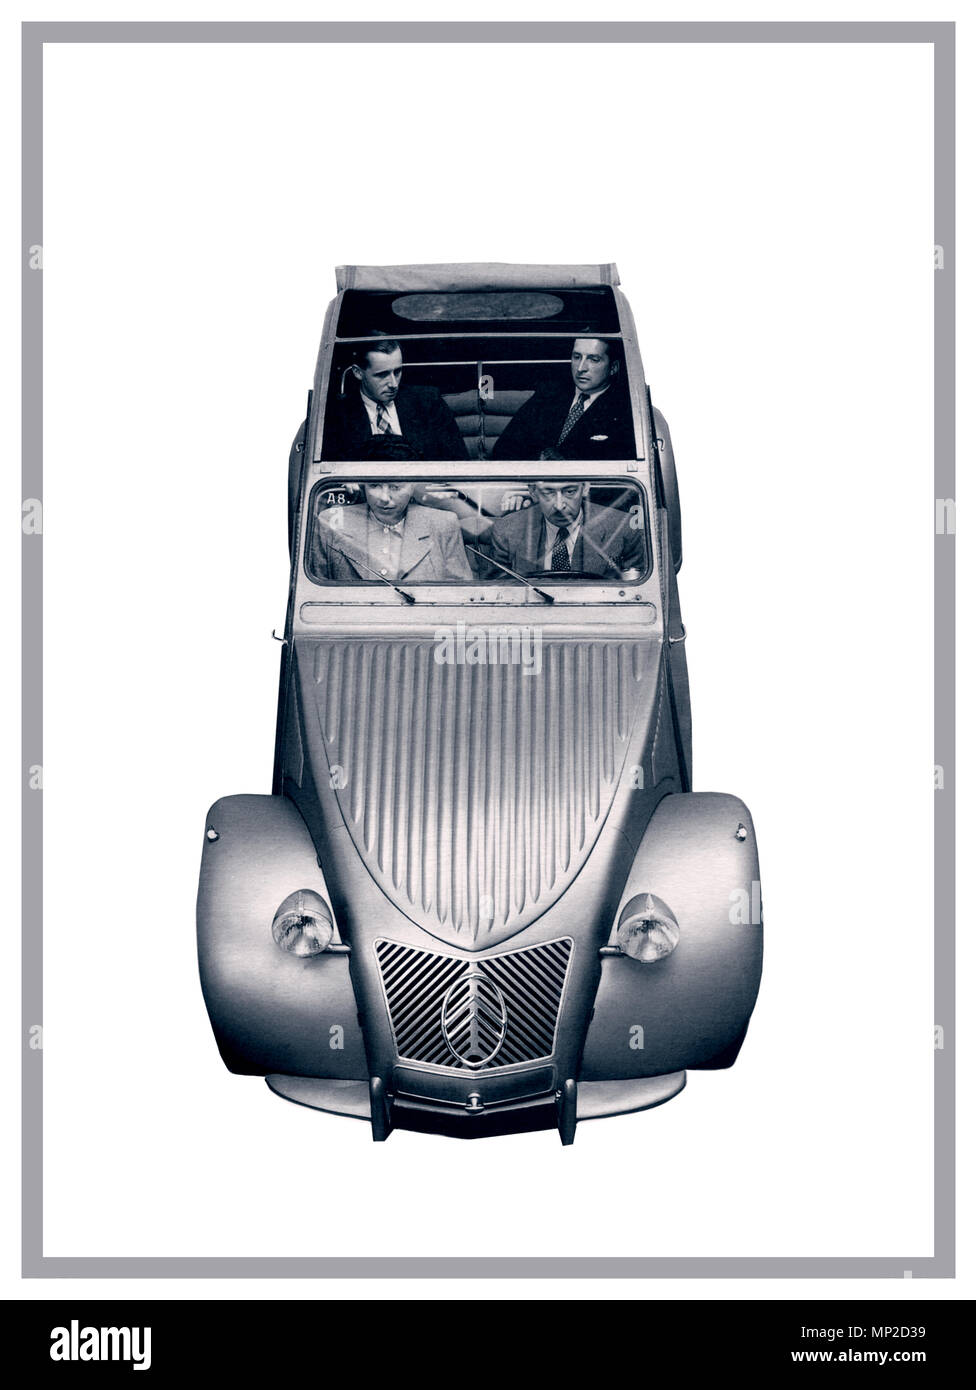 VINTAGE FRENCH AUTOMOBILE 1950's Citroën 2CV deux chevaux 1959 typical notable family French car on white background for French press advertising - Stock Image